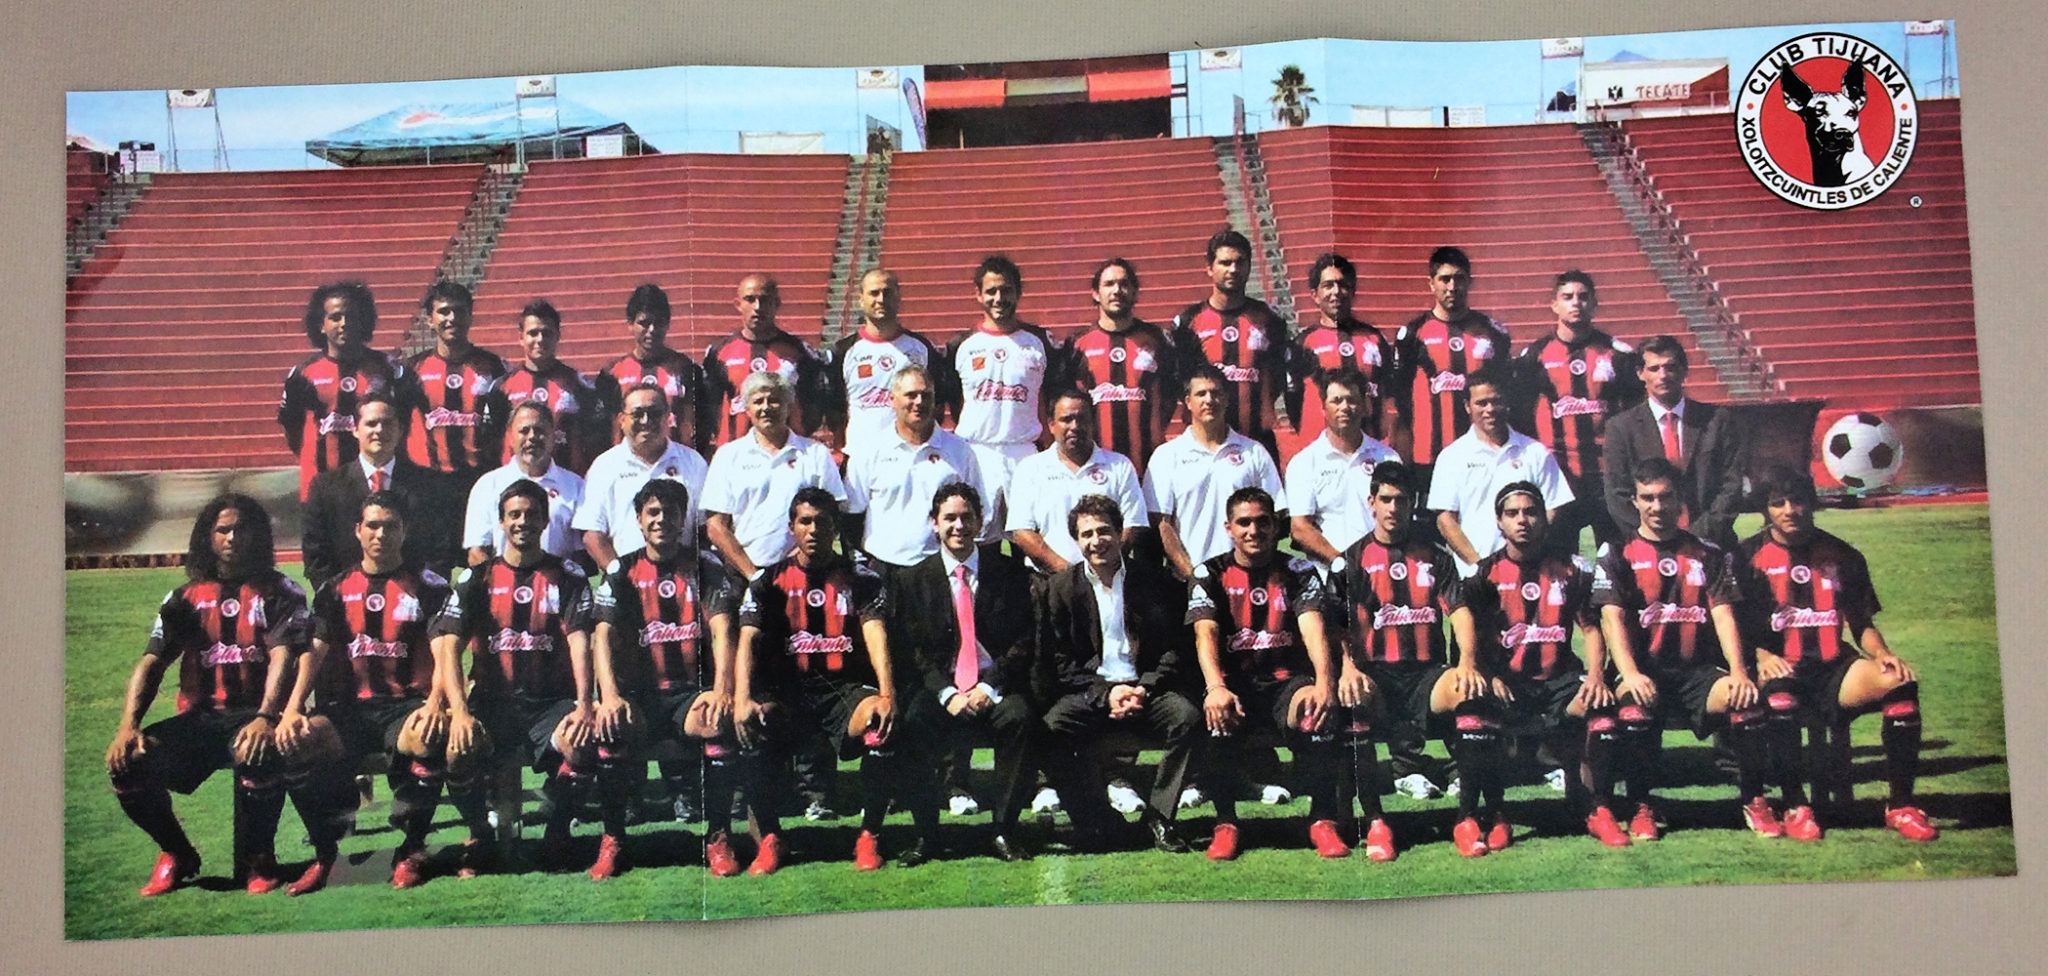 2008 Xolos de Tijuana Team Photo